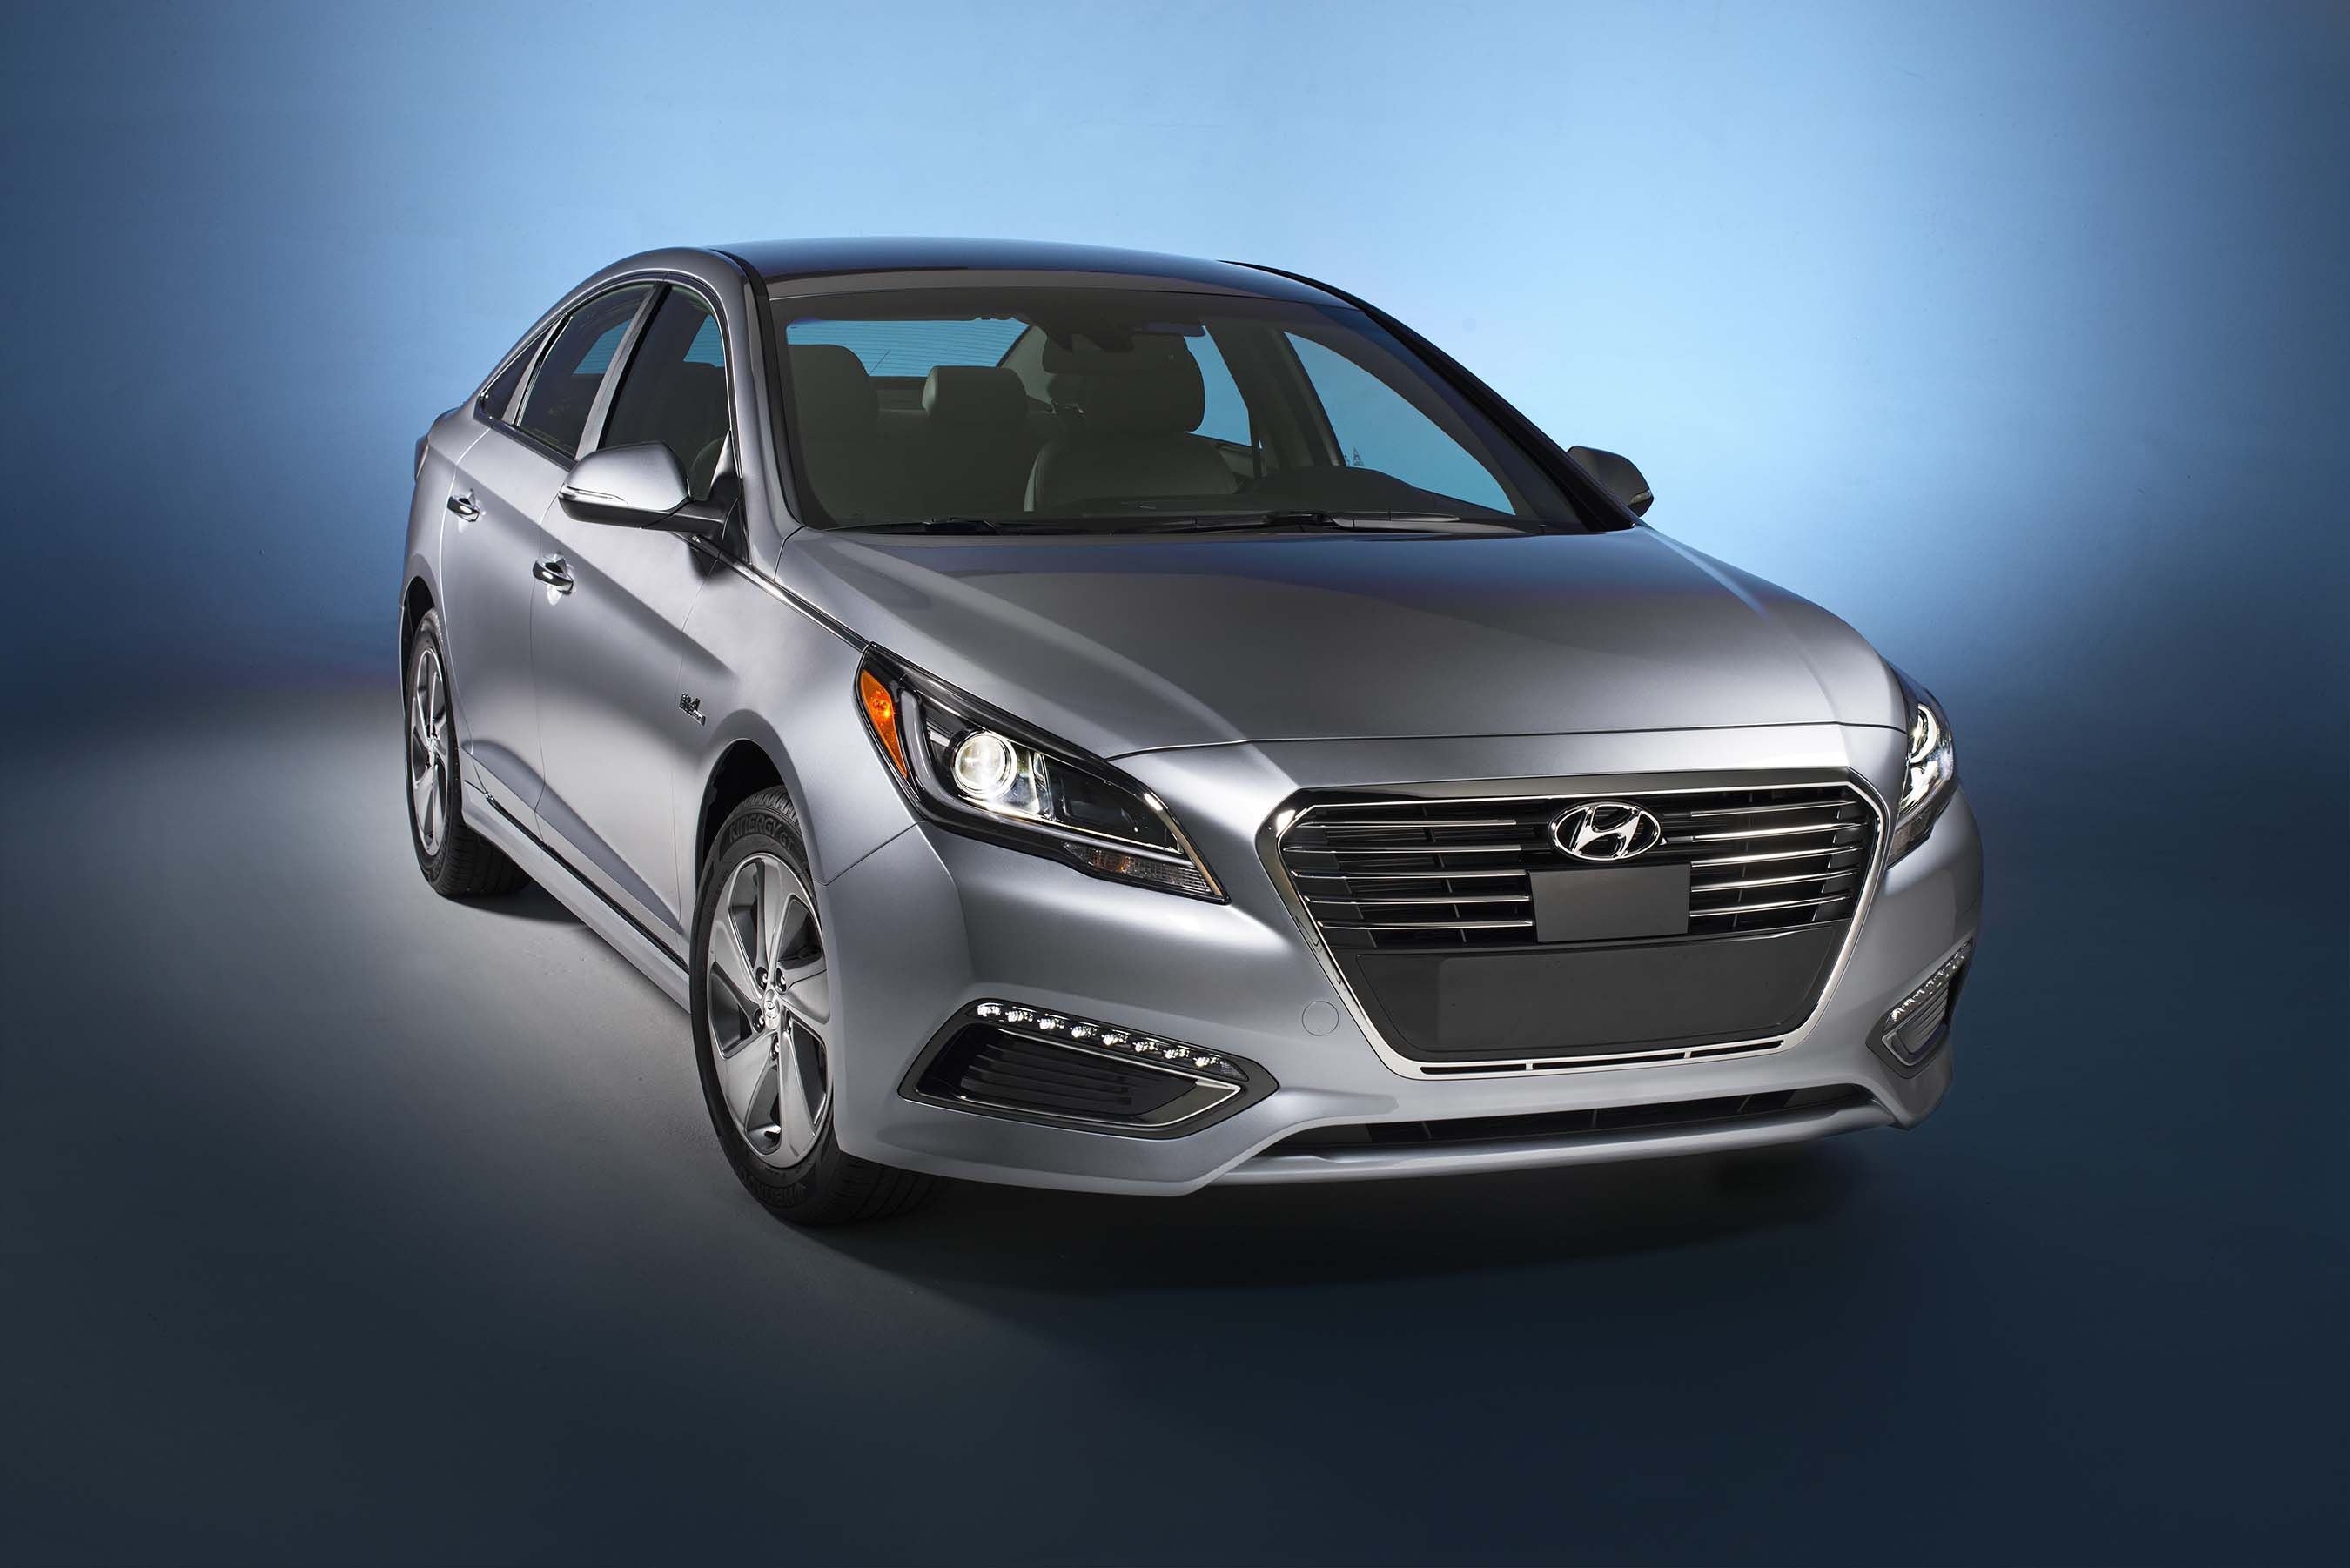 2016 Hyundai Sonata Plug In Hybrid Expected To Deliver 22 Mi All Electric Range